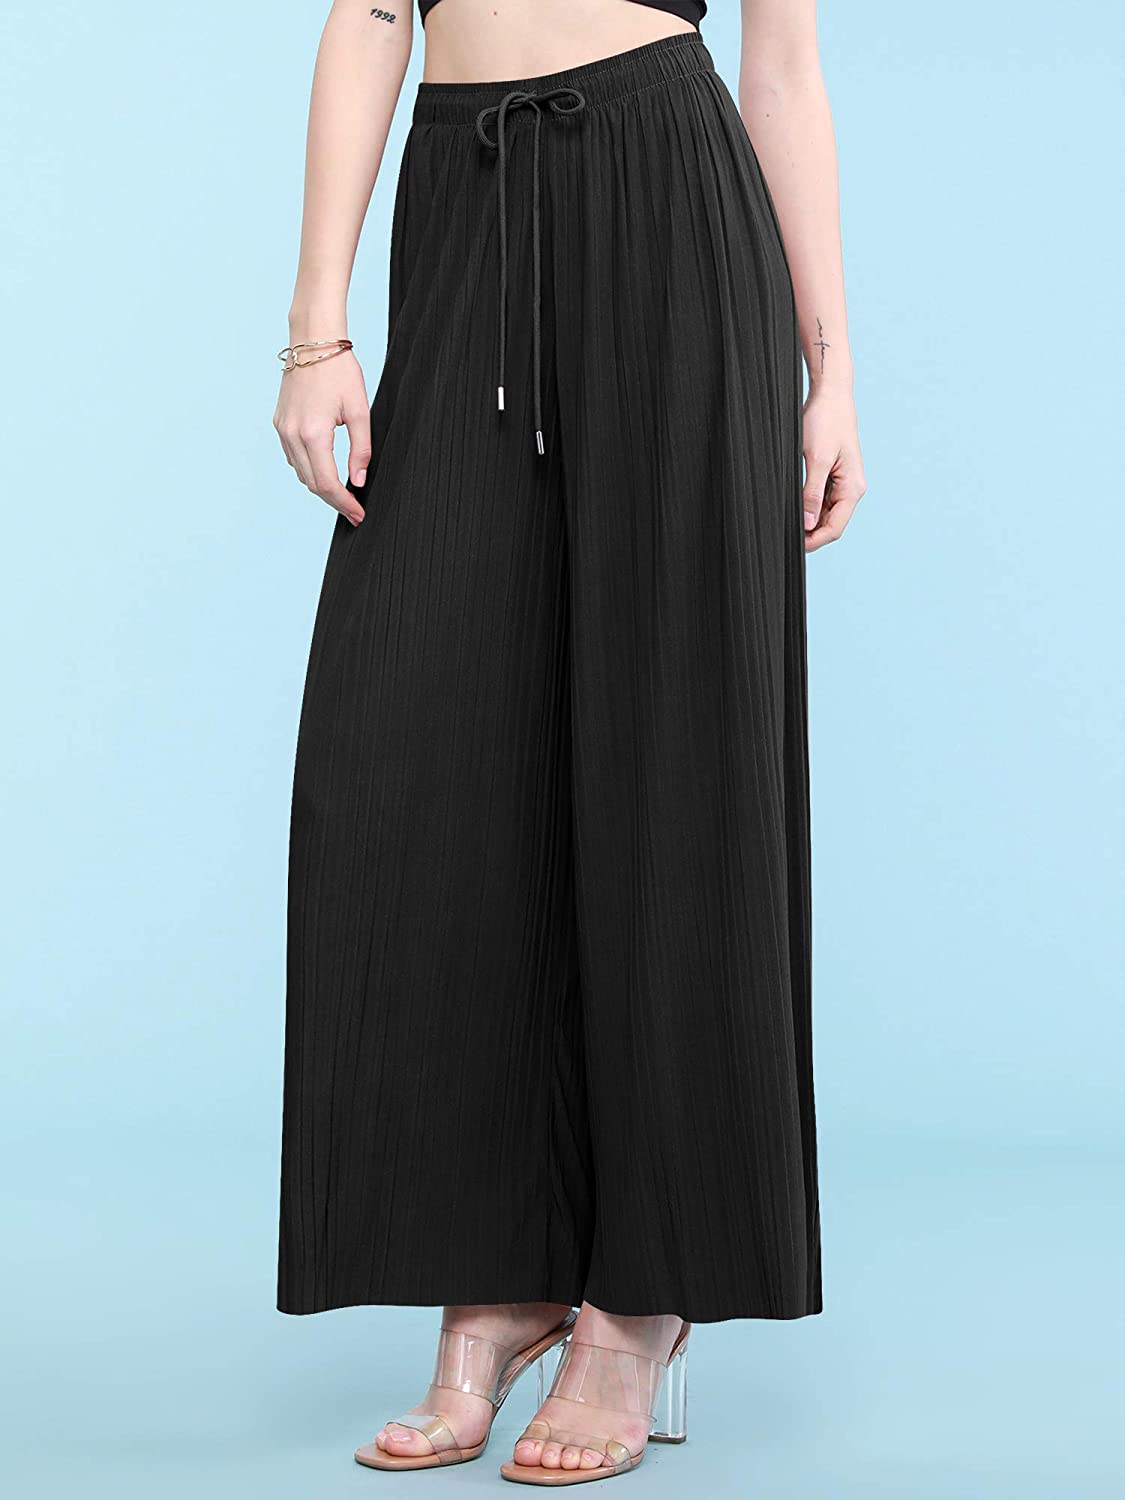 Made By Johnny Women's Premium Pleated Maxi Wide Leg Palazzo Pants Gaucho- High Waist with Drawstring